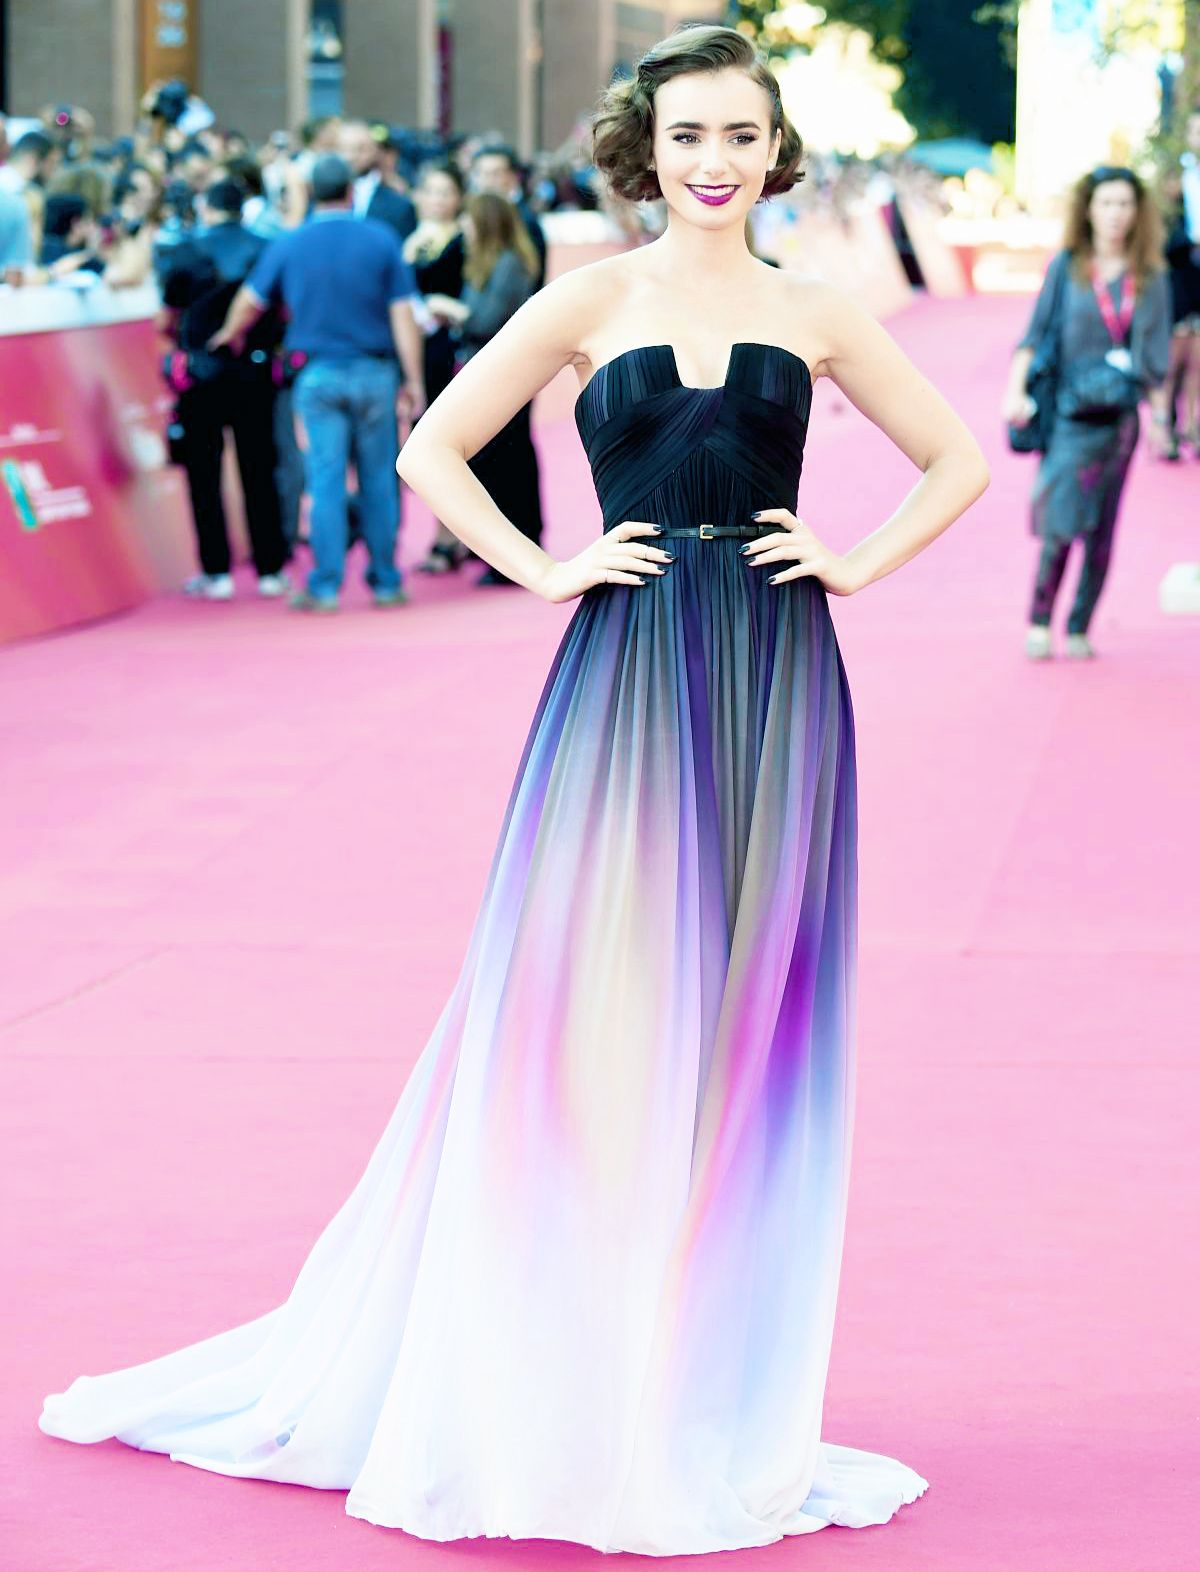 AGGRESSIVELY COMPOSING AN OPERA FOR THIS DRESS] - lily collins in ...